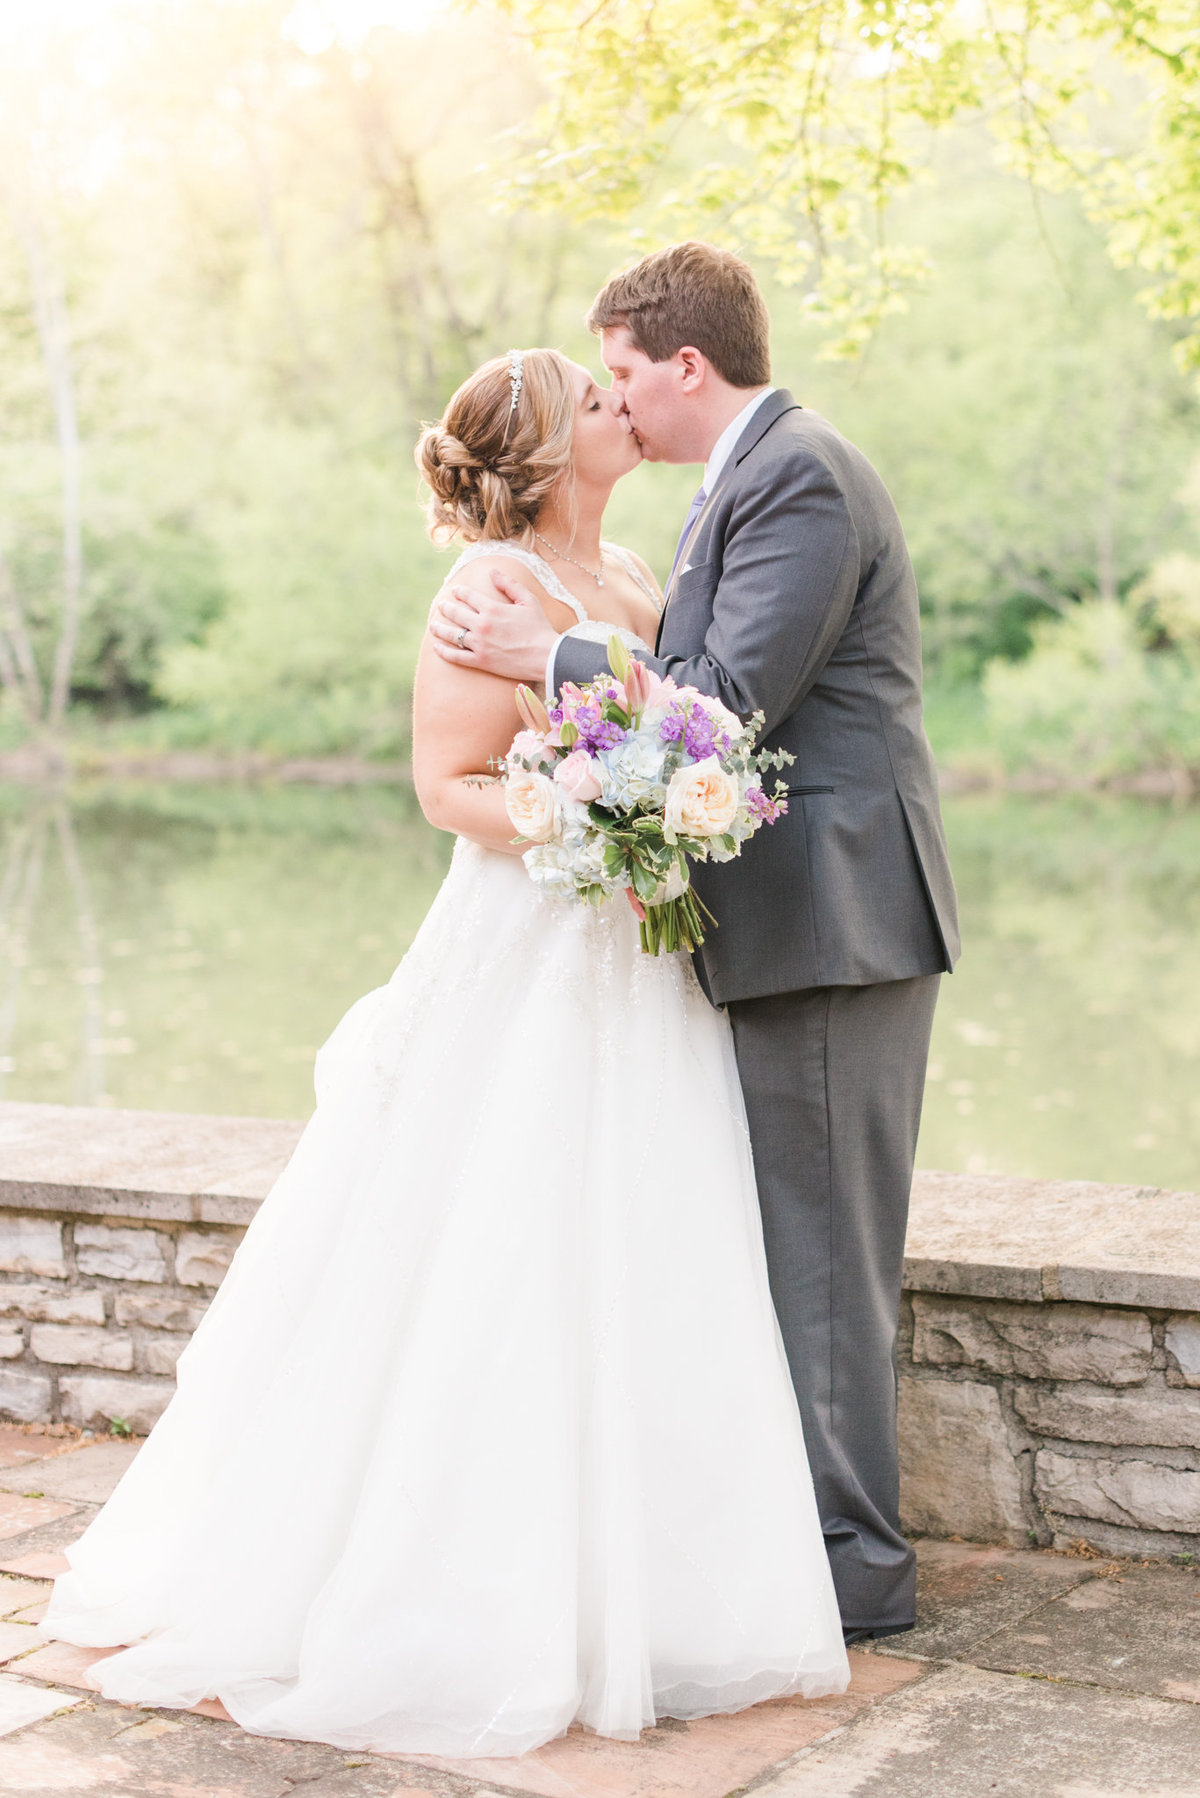 Belinda Jean Photography Weddings-1-2